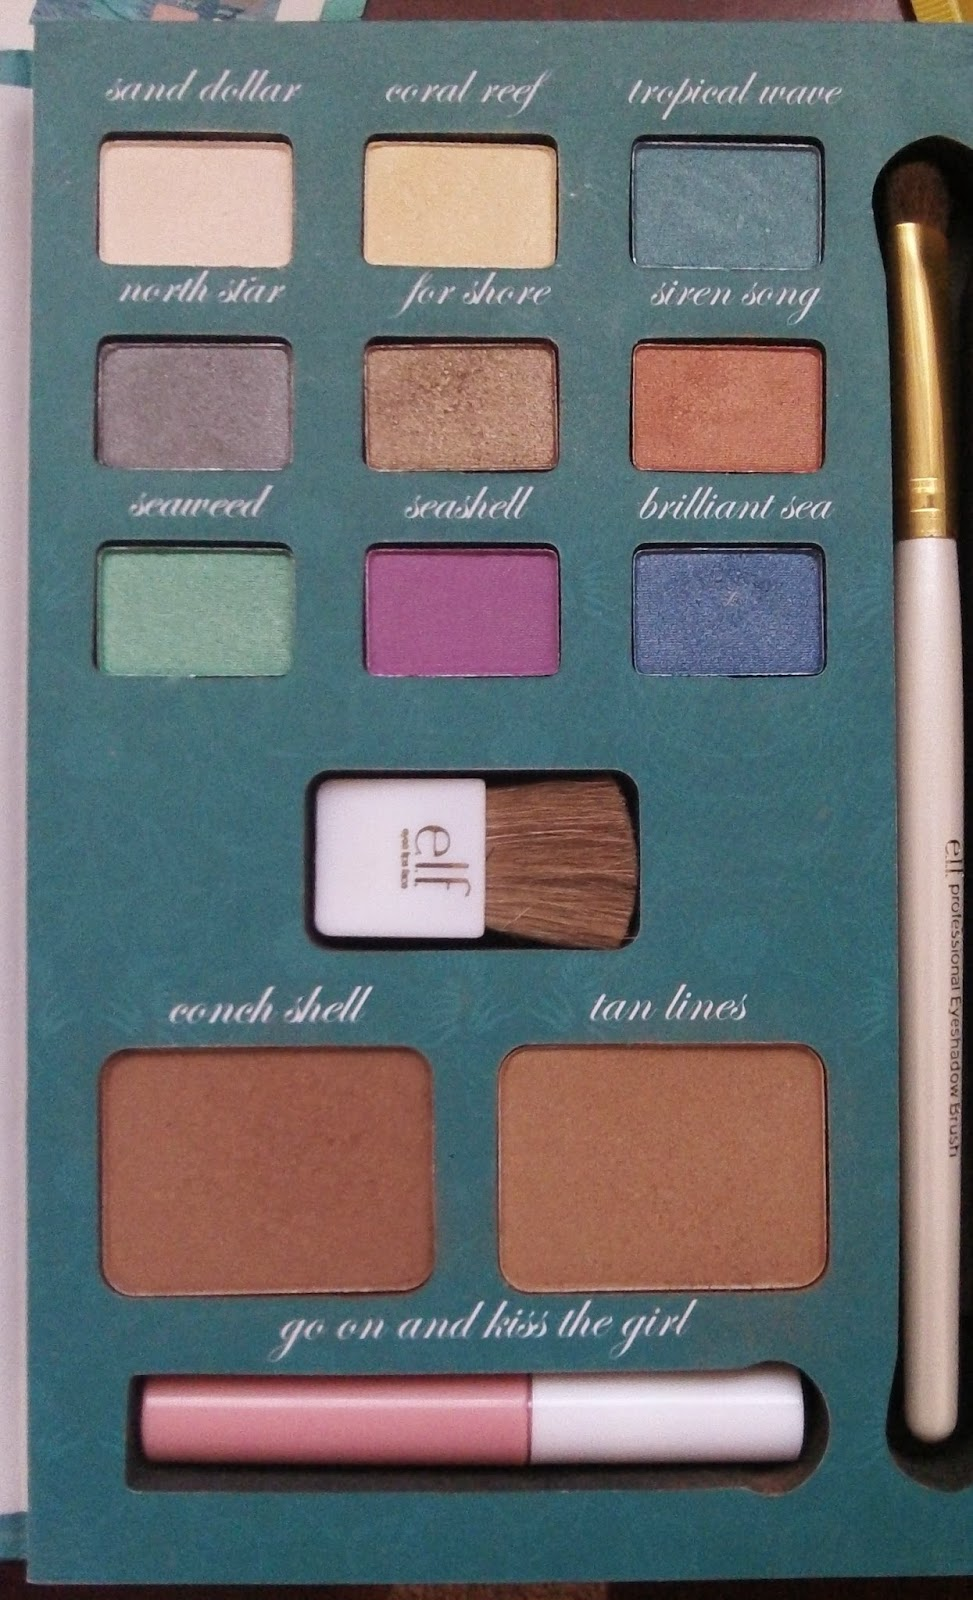 Whats in the elf Ariel palette